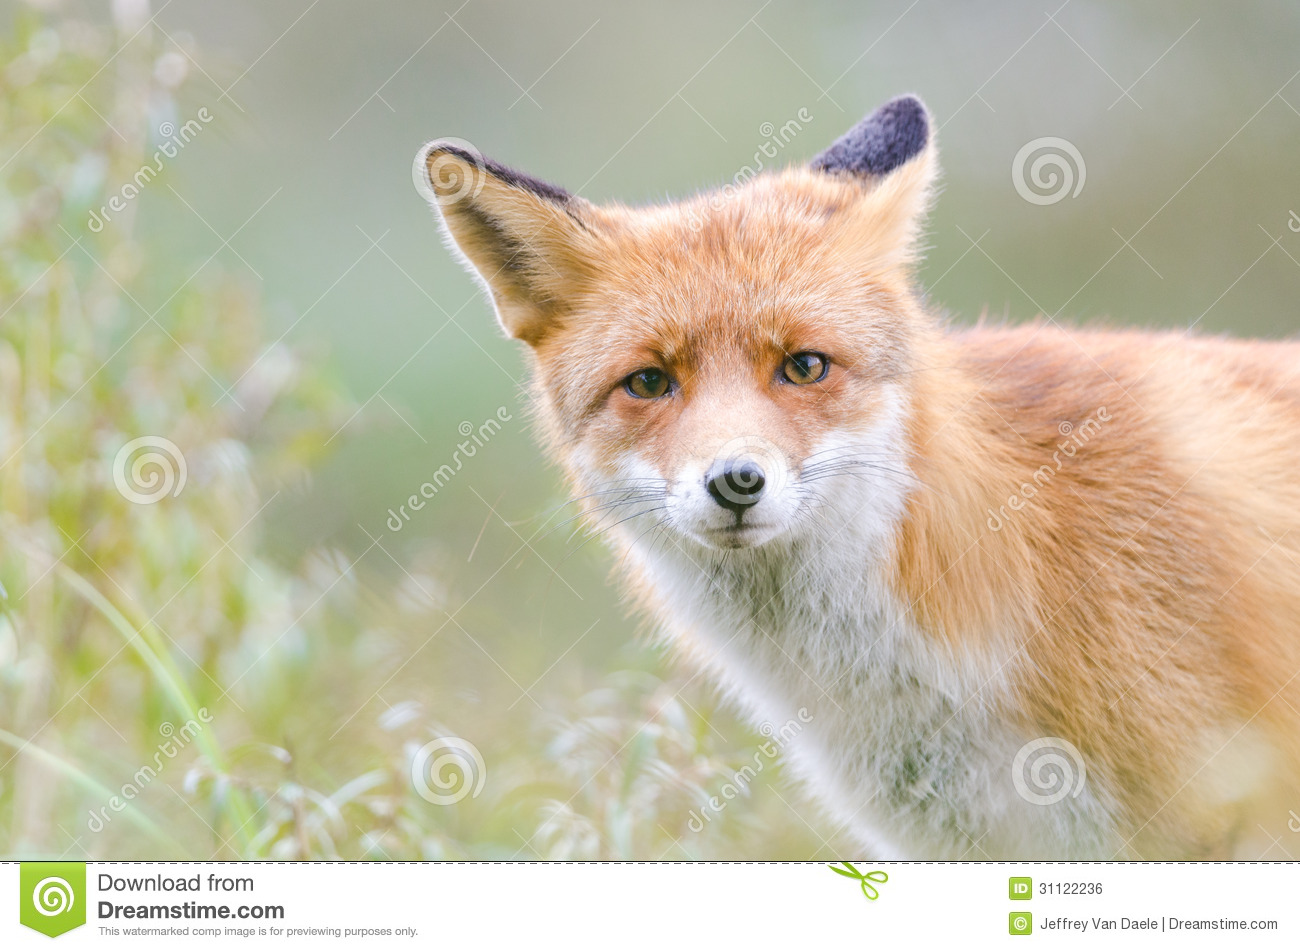 Royalty Free Stock Photos Free Red Fox Royalty Free Stock